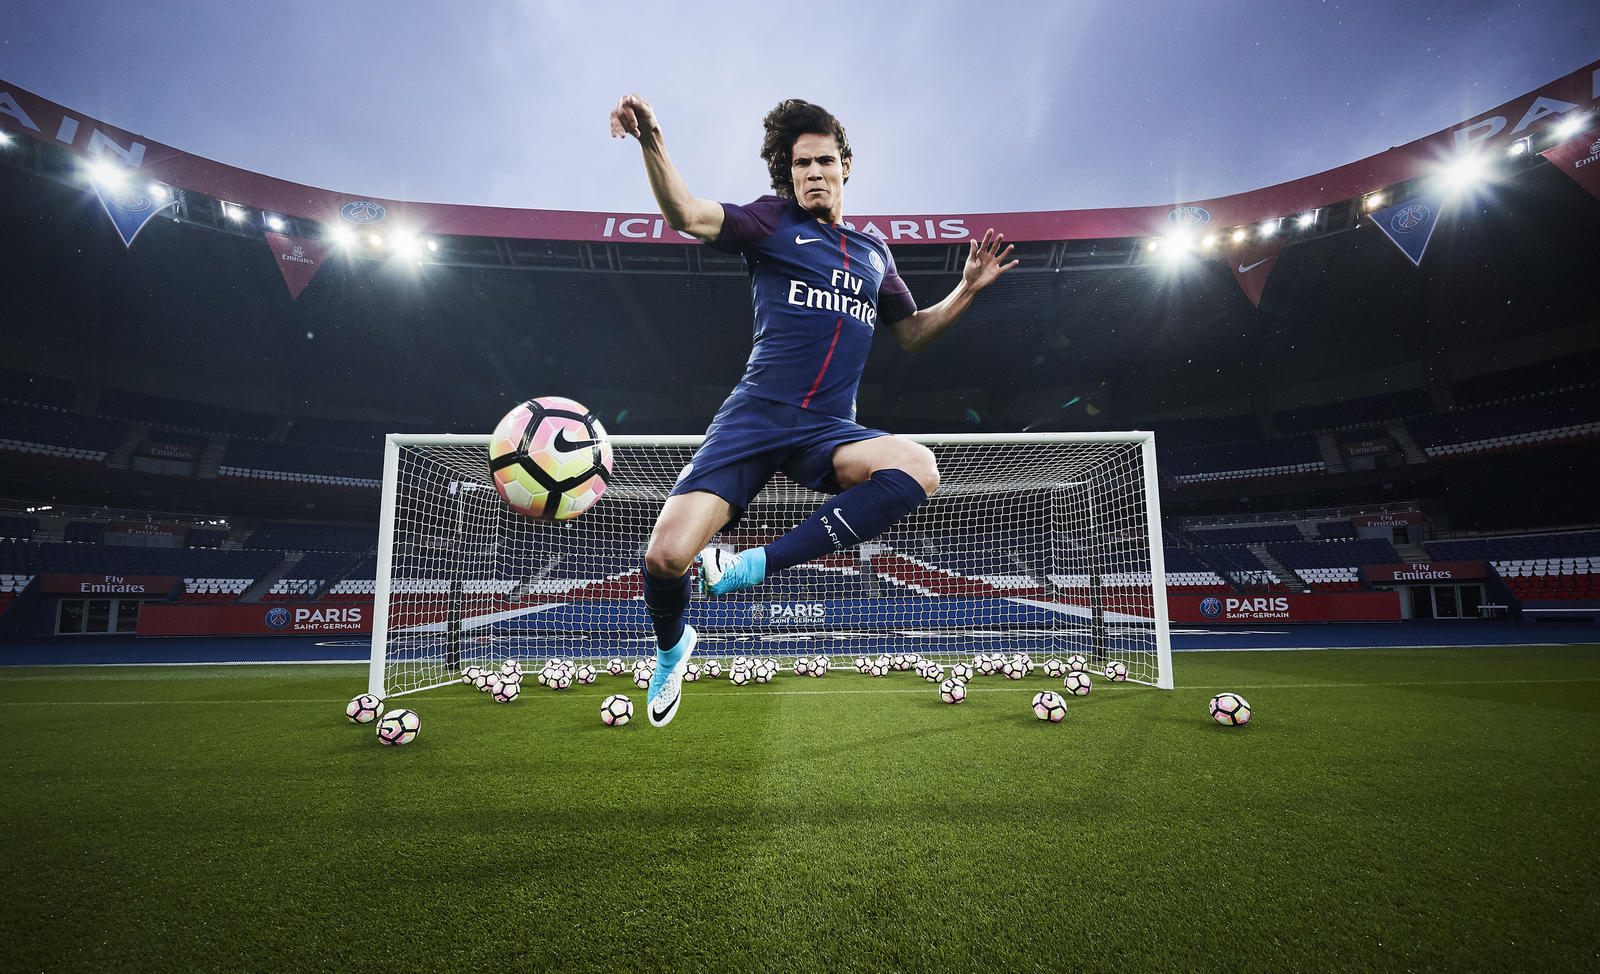 Edinson Cavani, leading goalscorer in France, with 49 goals in all  competitions, presents the new PSG home kit for 2017-18